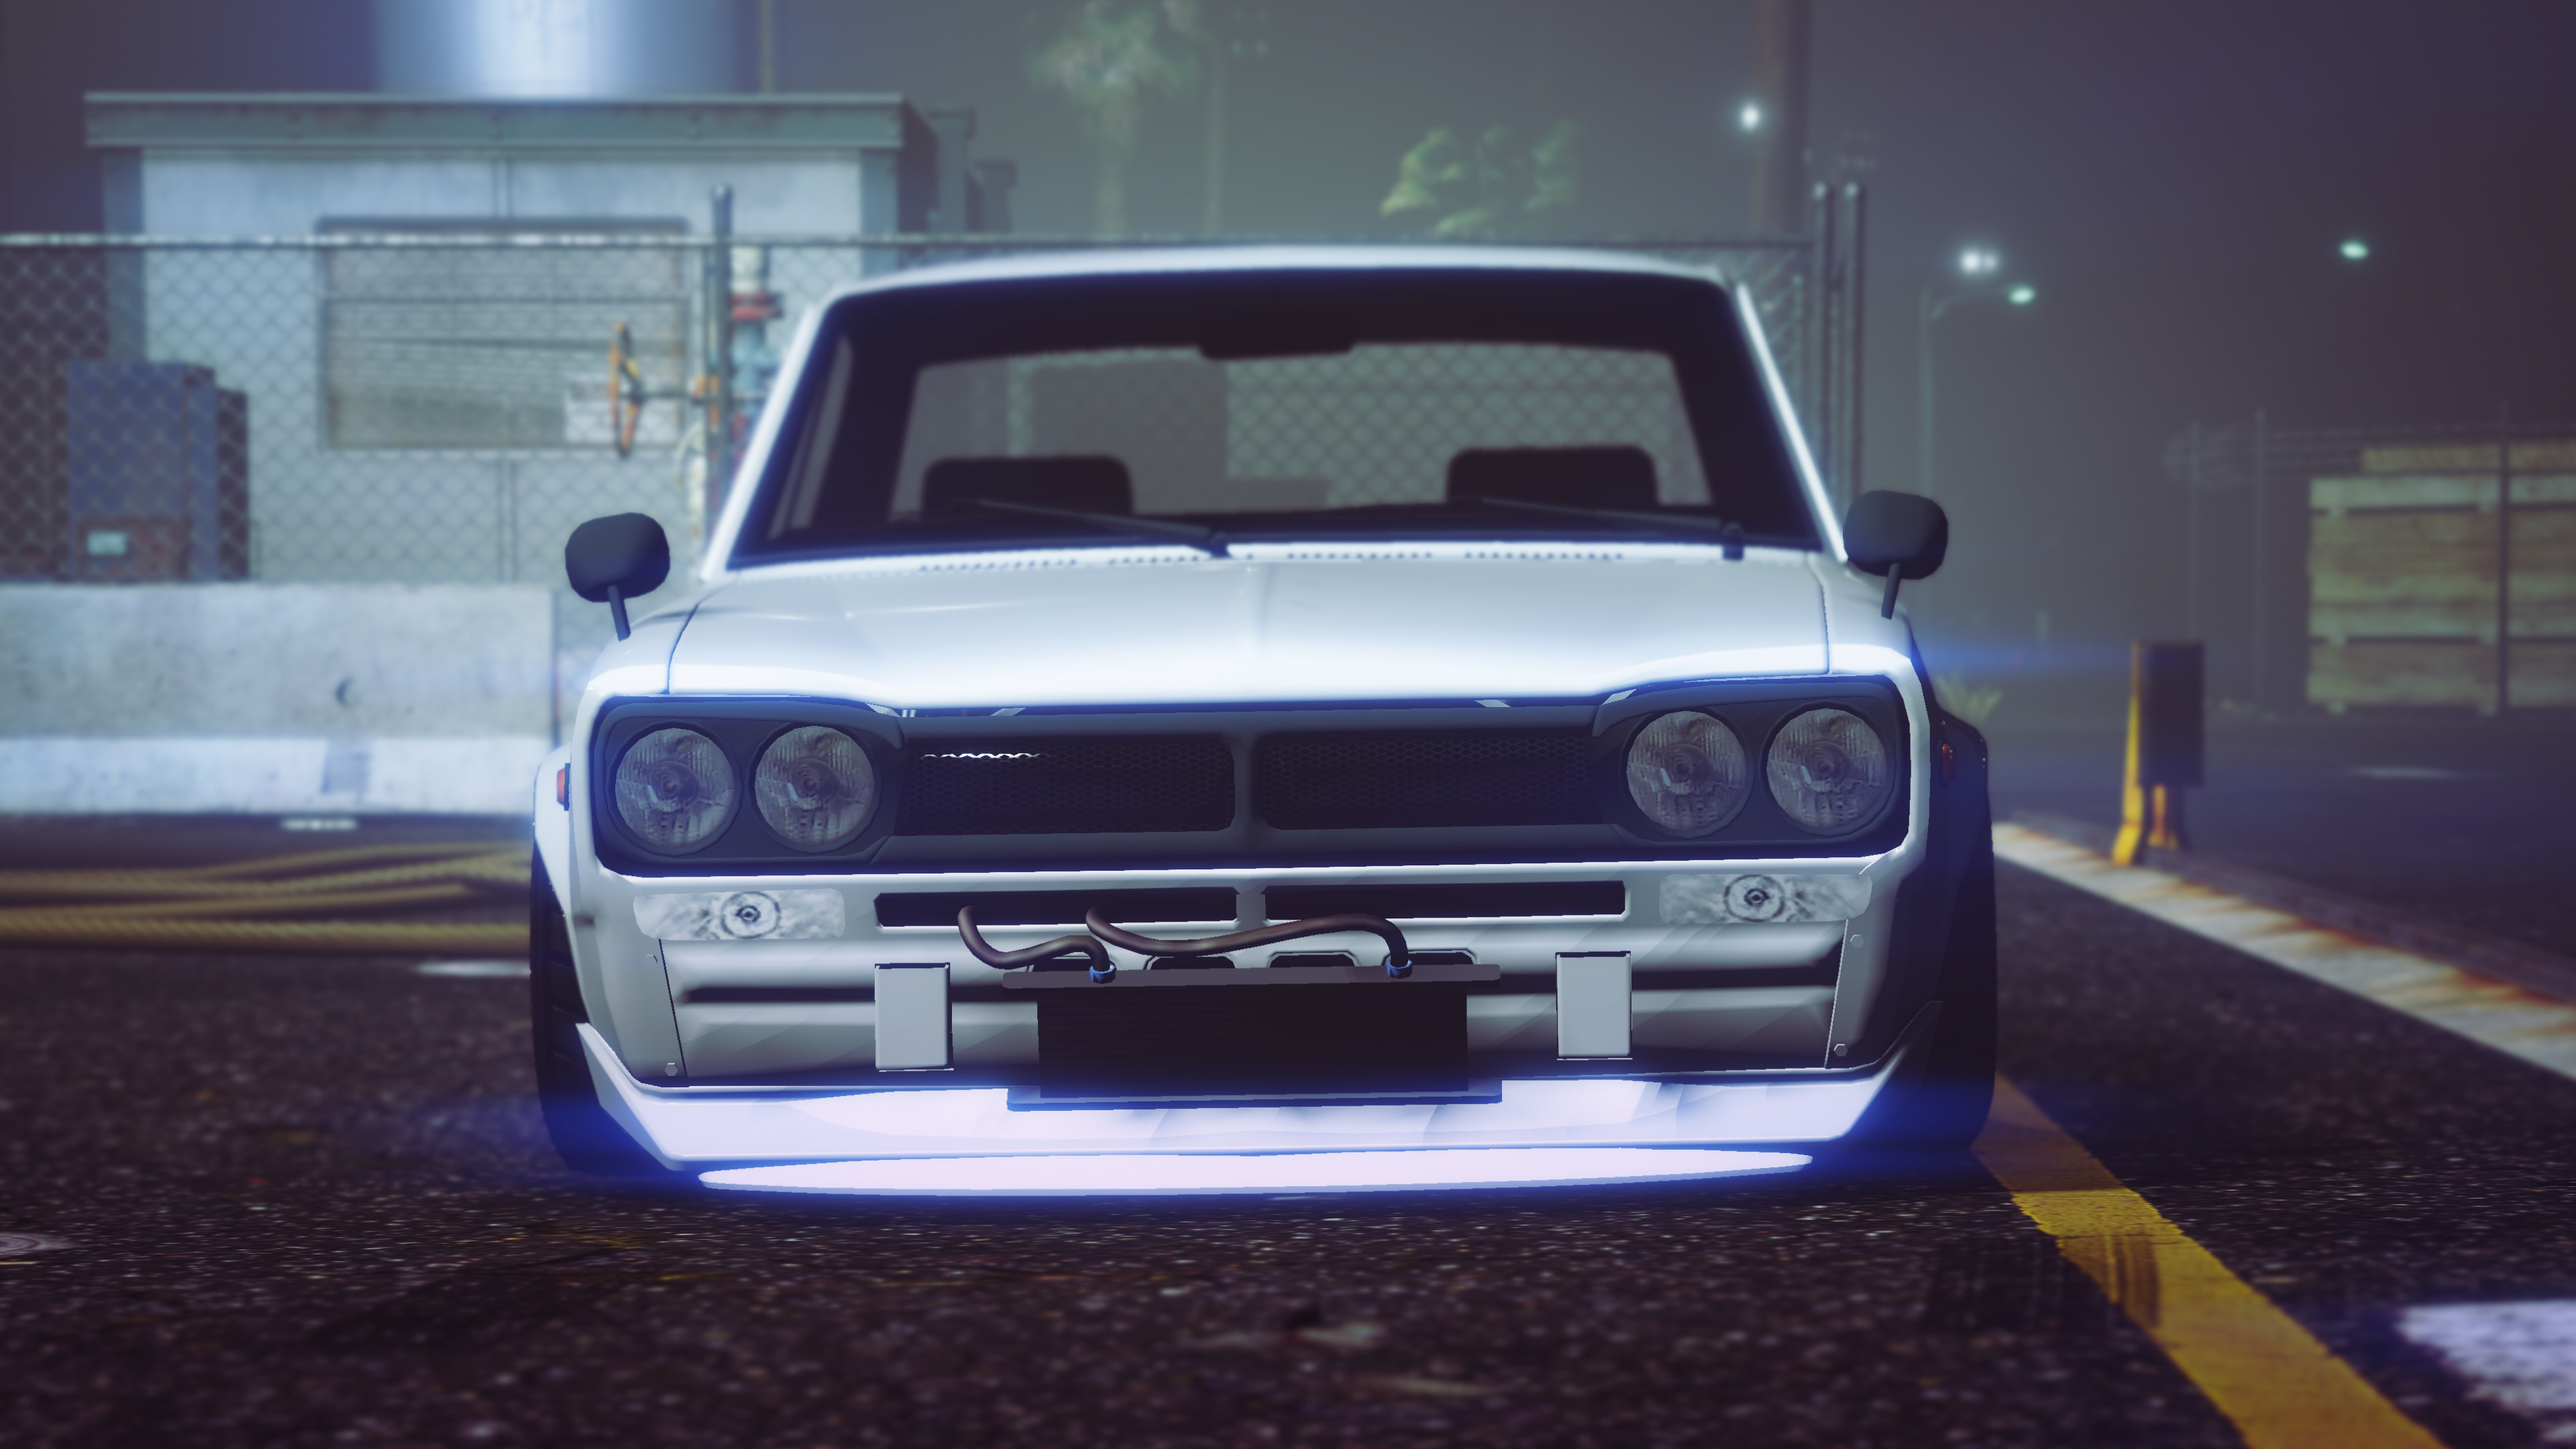 Gta 5 Mod Brings Real Cars To San Andreas Vg247